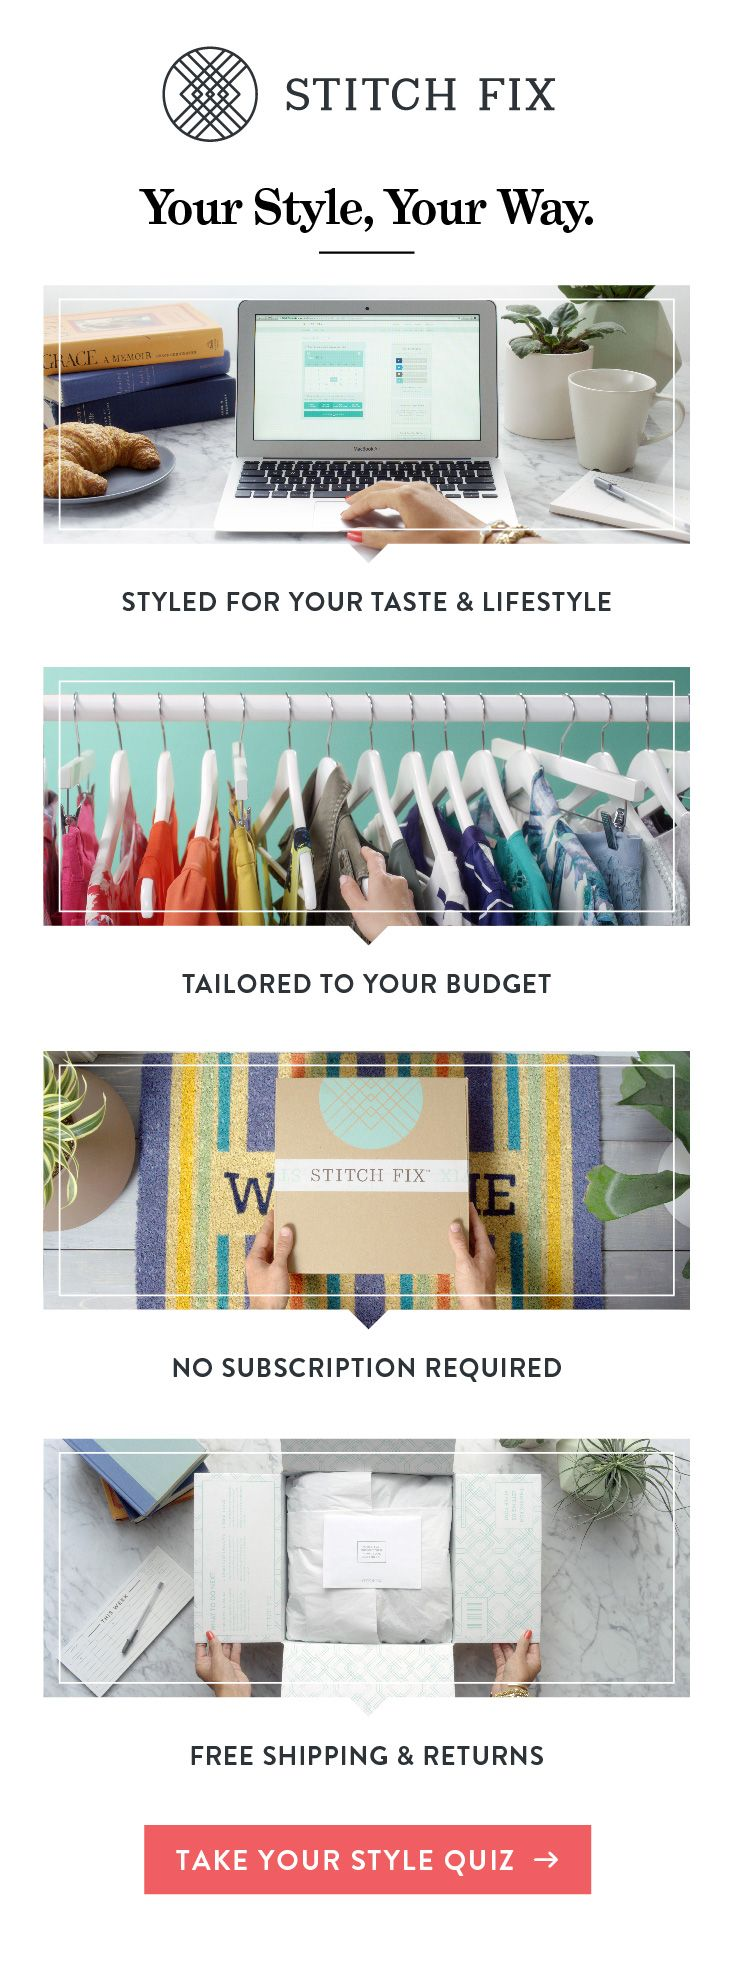 Stay ahead of the fall fashion game with a personal stylist. Get handpicked looks for your body and budget, delivered for free whenever you need a Fix. Build your dream wardrobe without hitting a single store, and keep only what you love. Sign up for Stitch Fix for the hottest brands, styles and insider info, curated just for you.